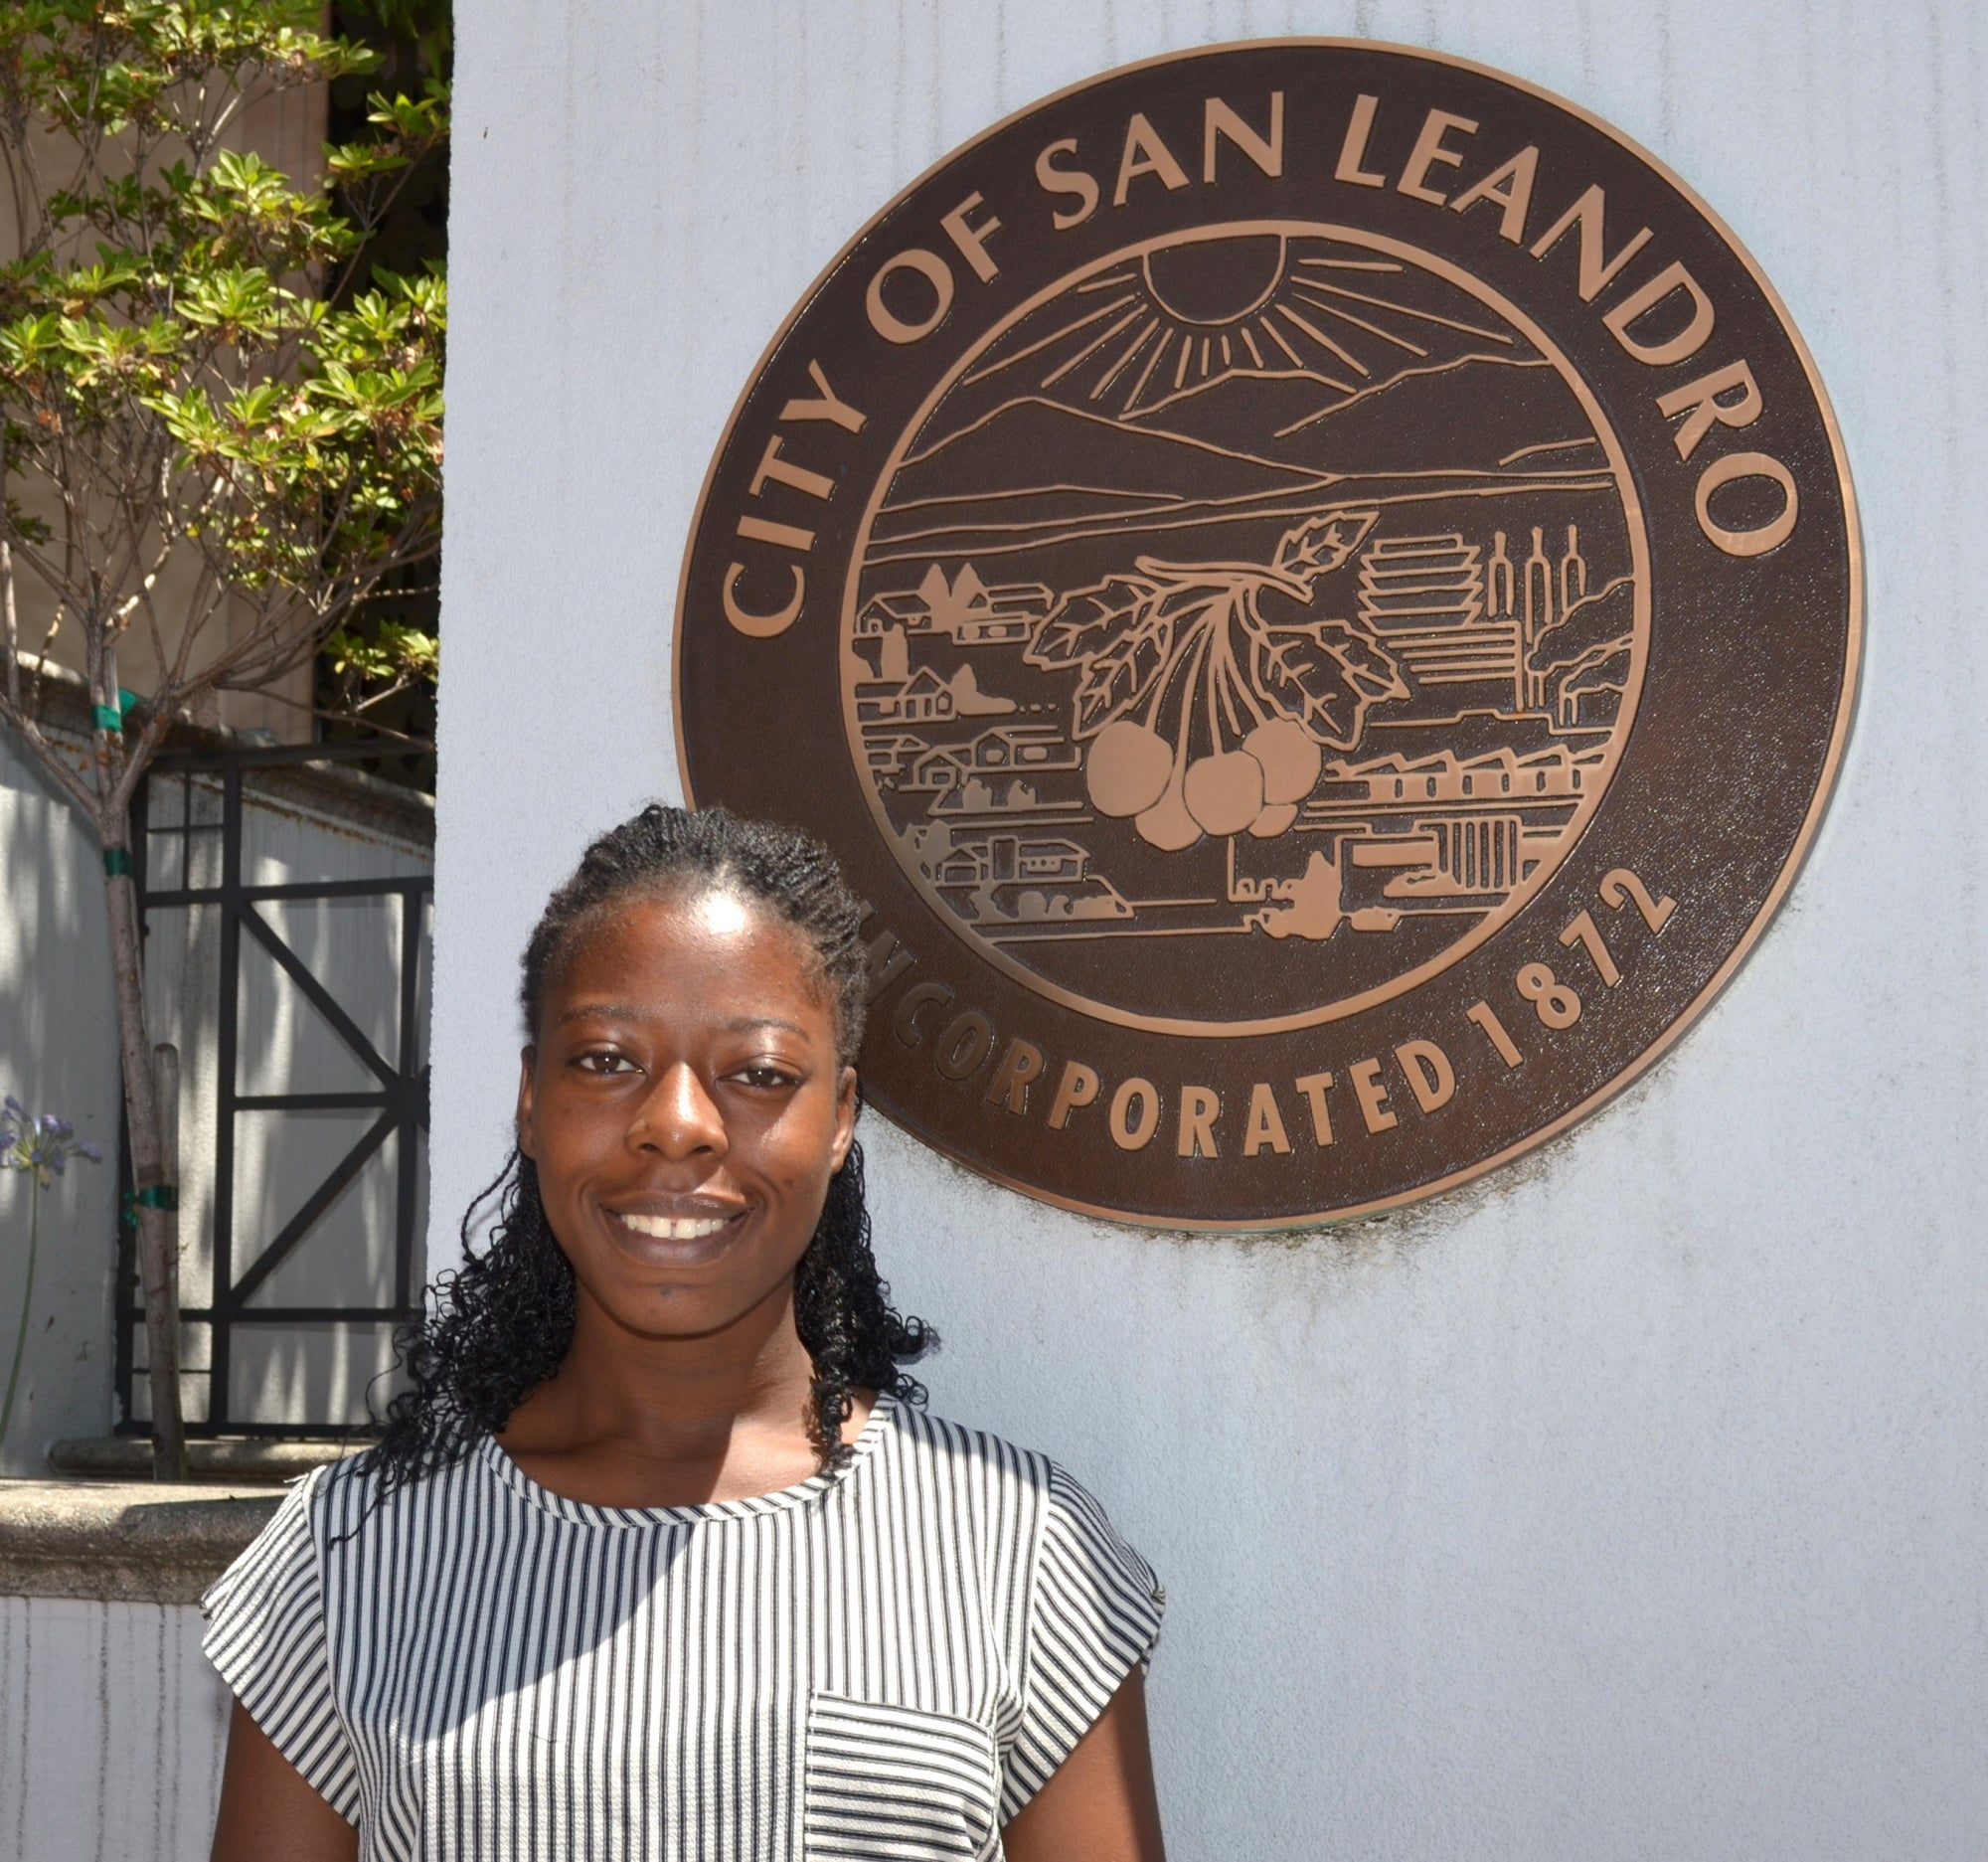 Flore Mountsambote, Intern for the City of San Leandro, Alameda County